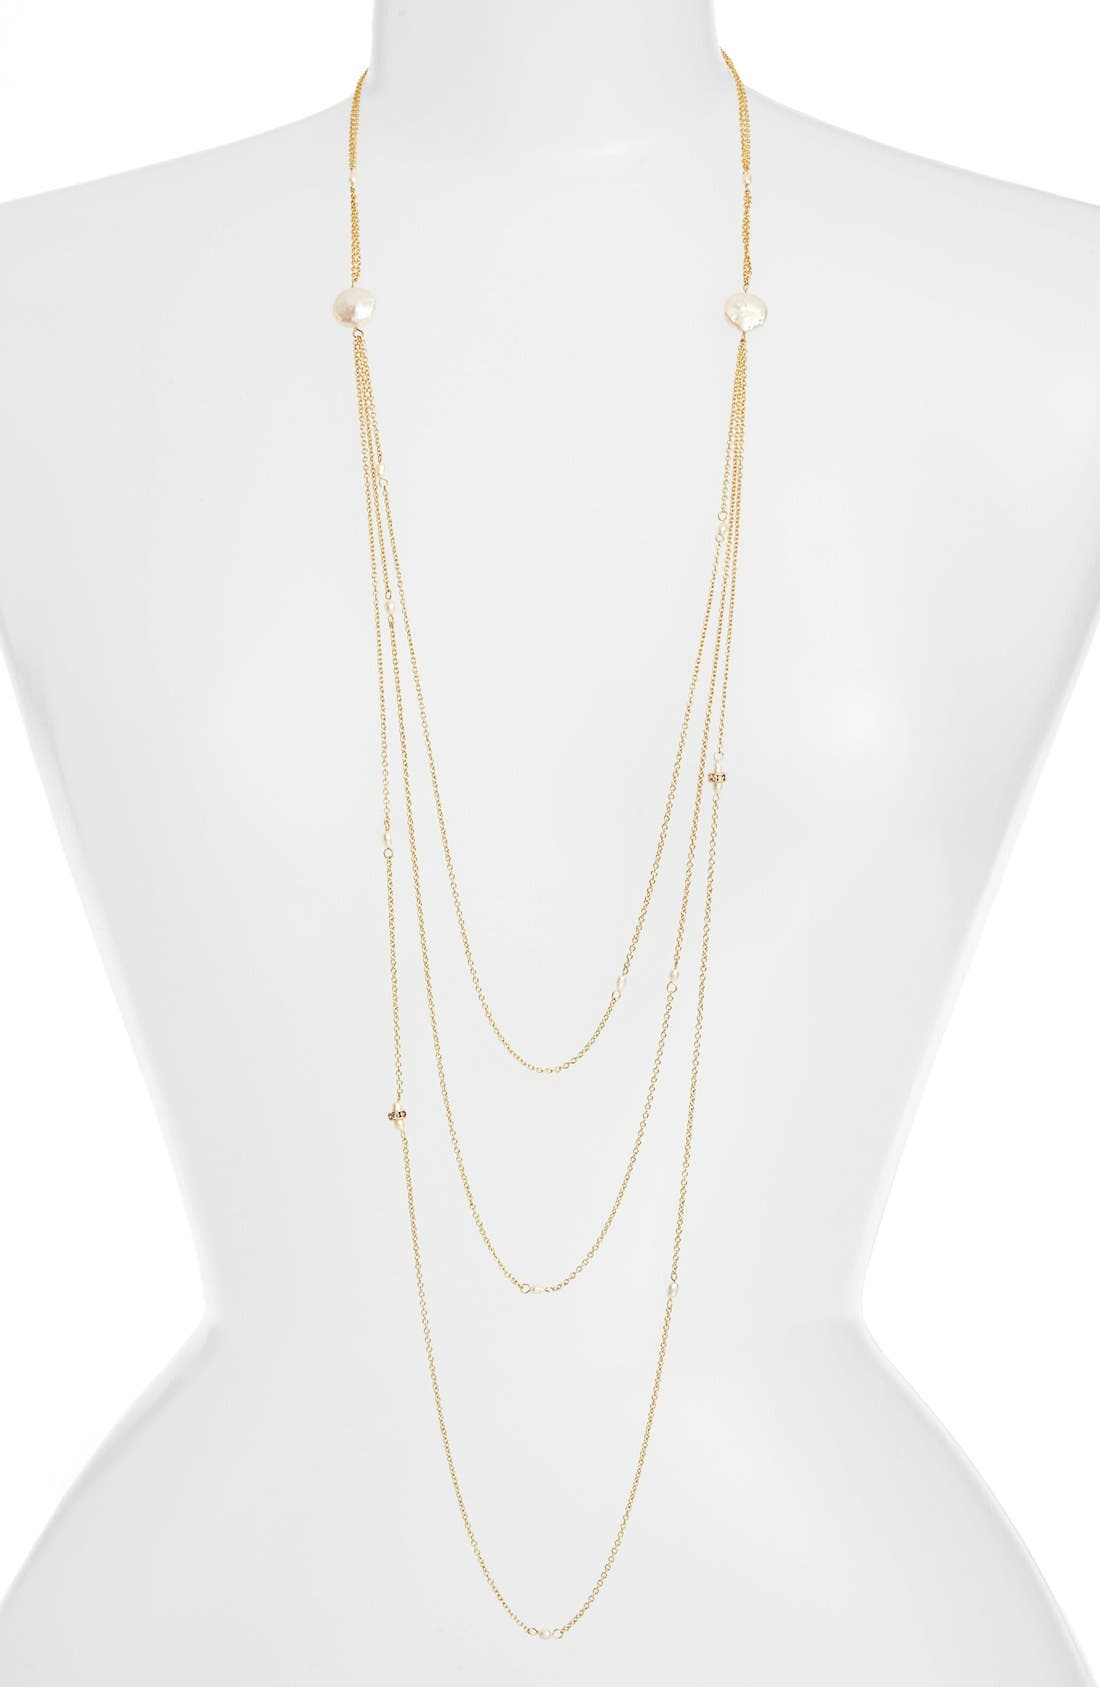 Tiered Chain Necklace,                         Main,                         color, 710